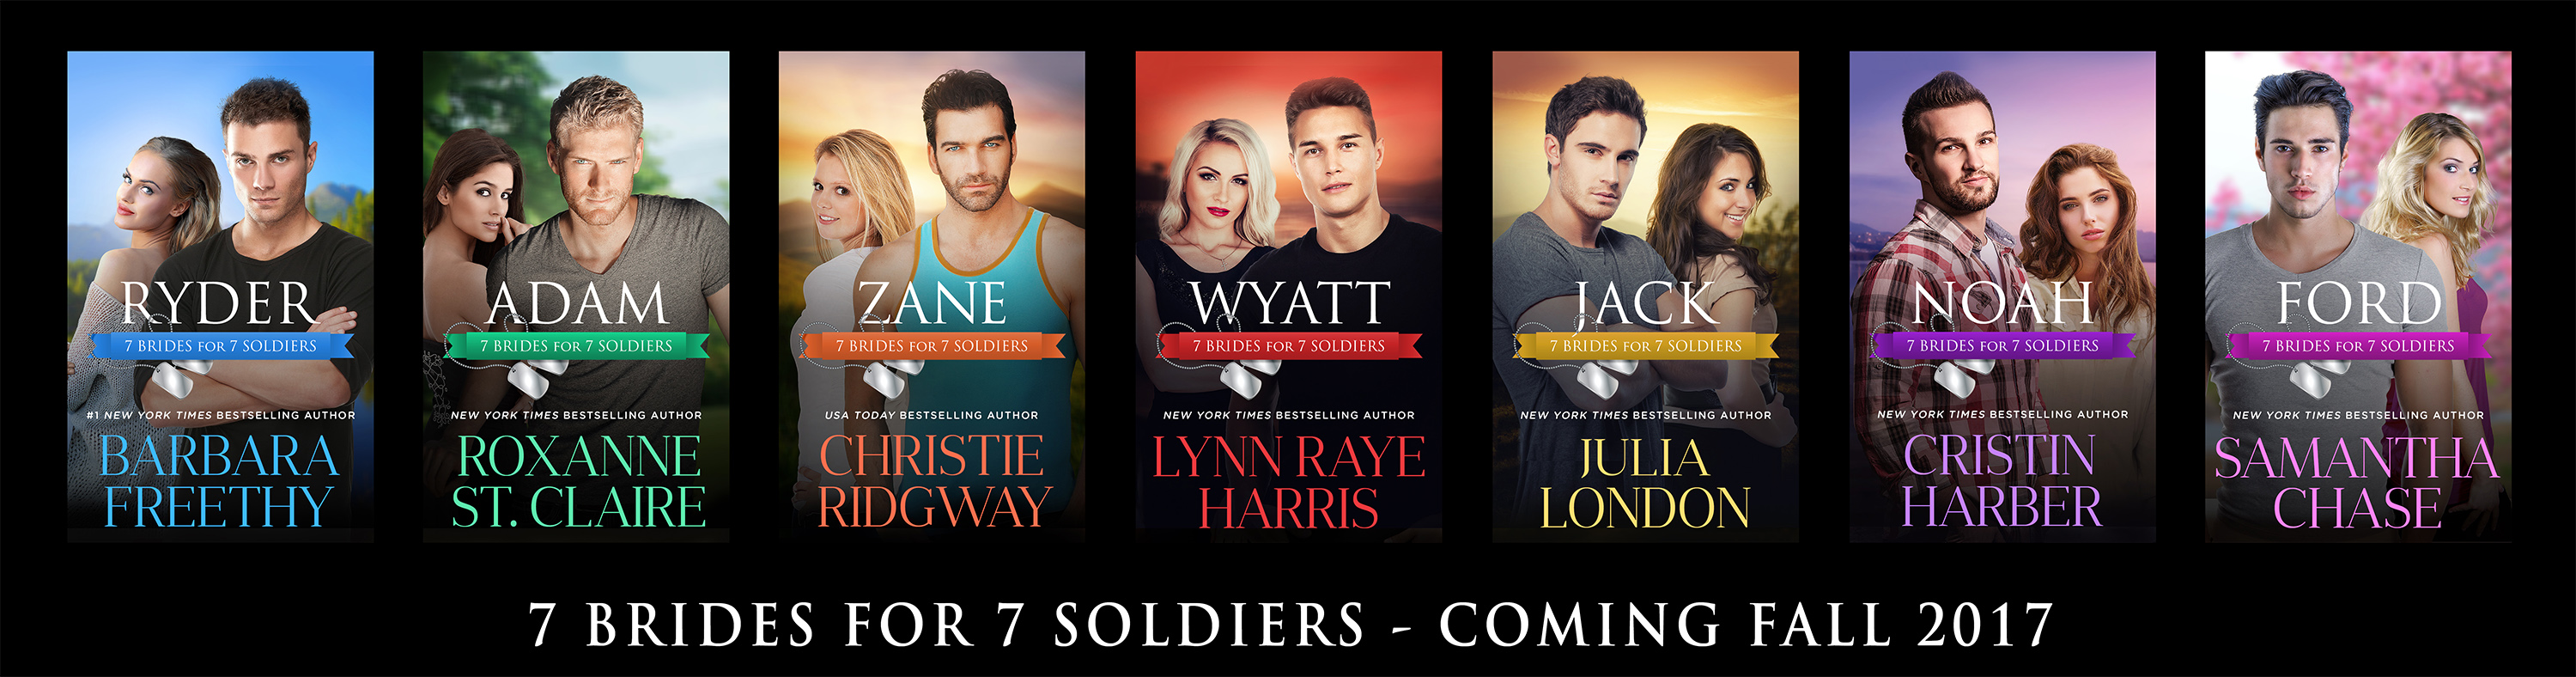 7 Brides for 7 Soldiers series cover reveal